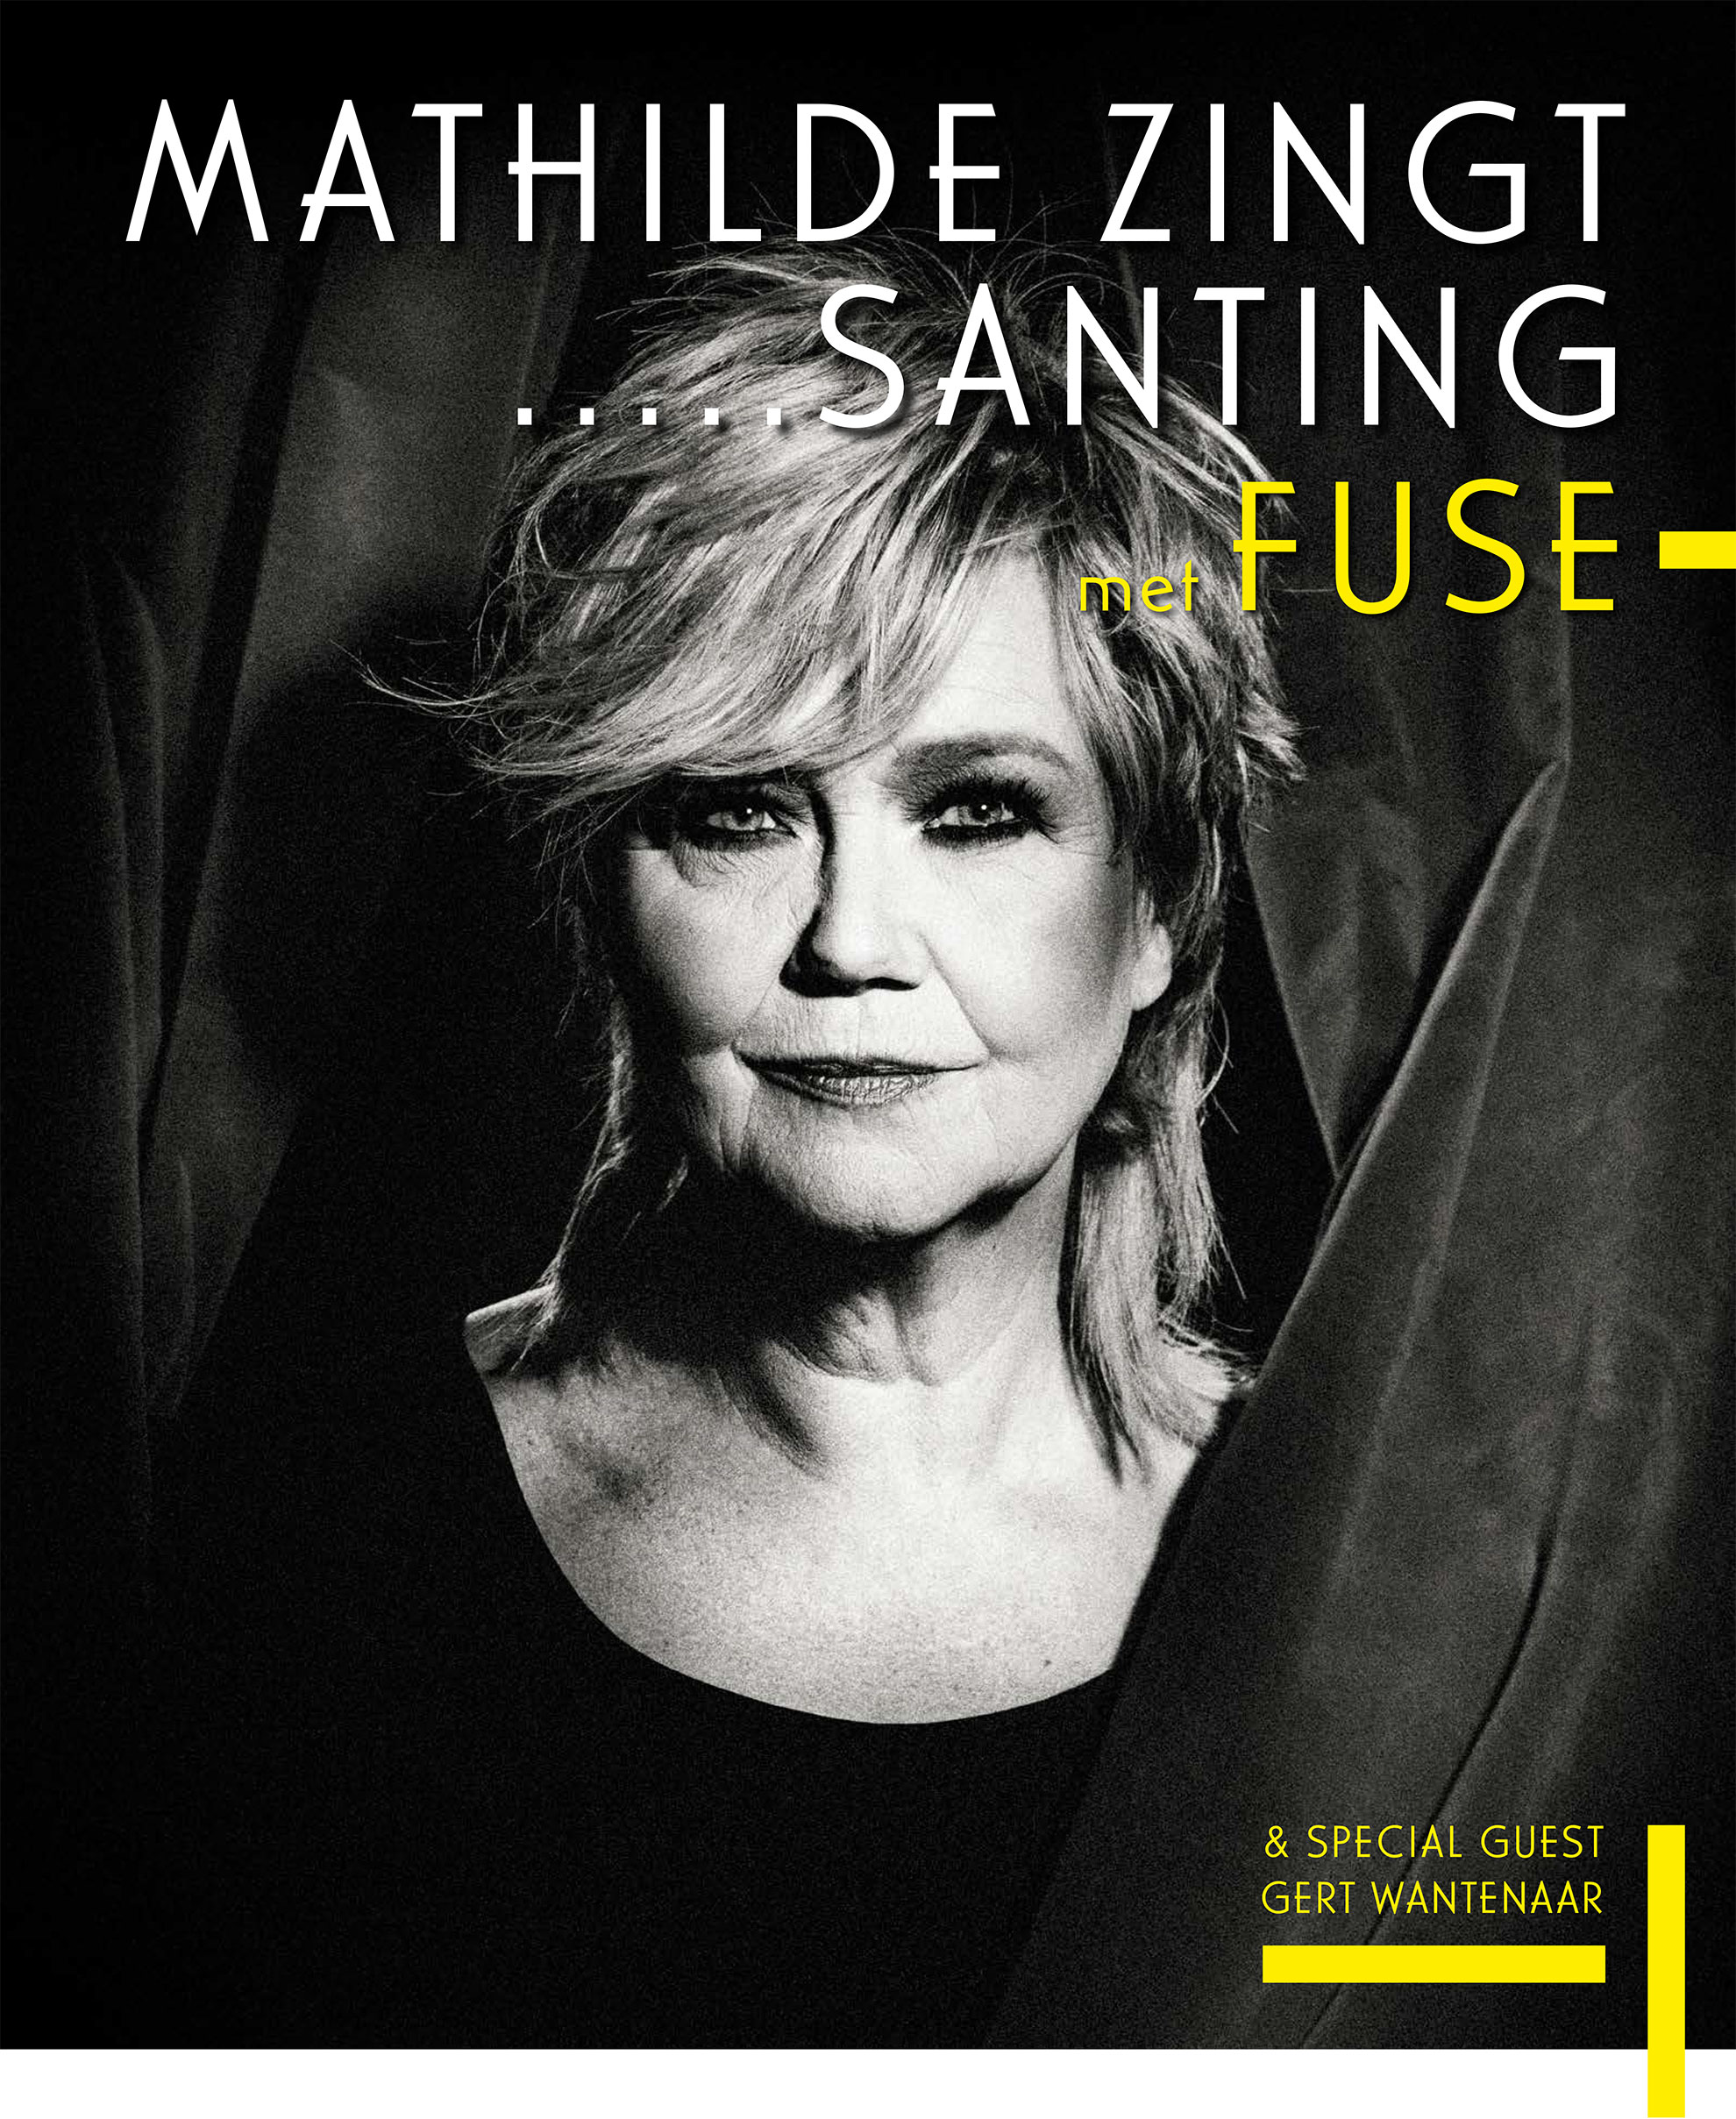 Tour poster - Mathilde Santing and Fuse